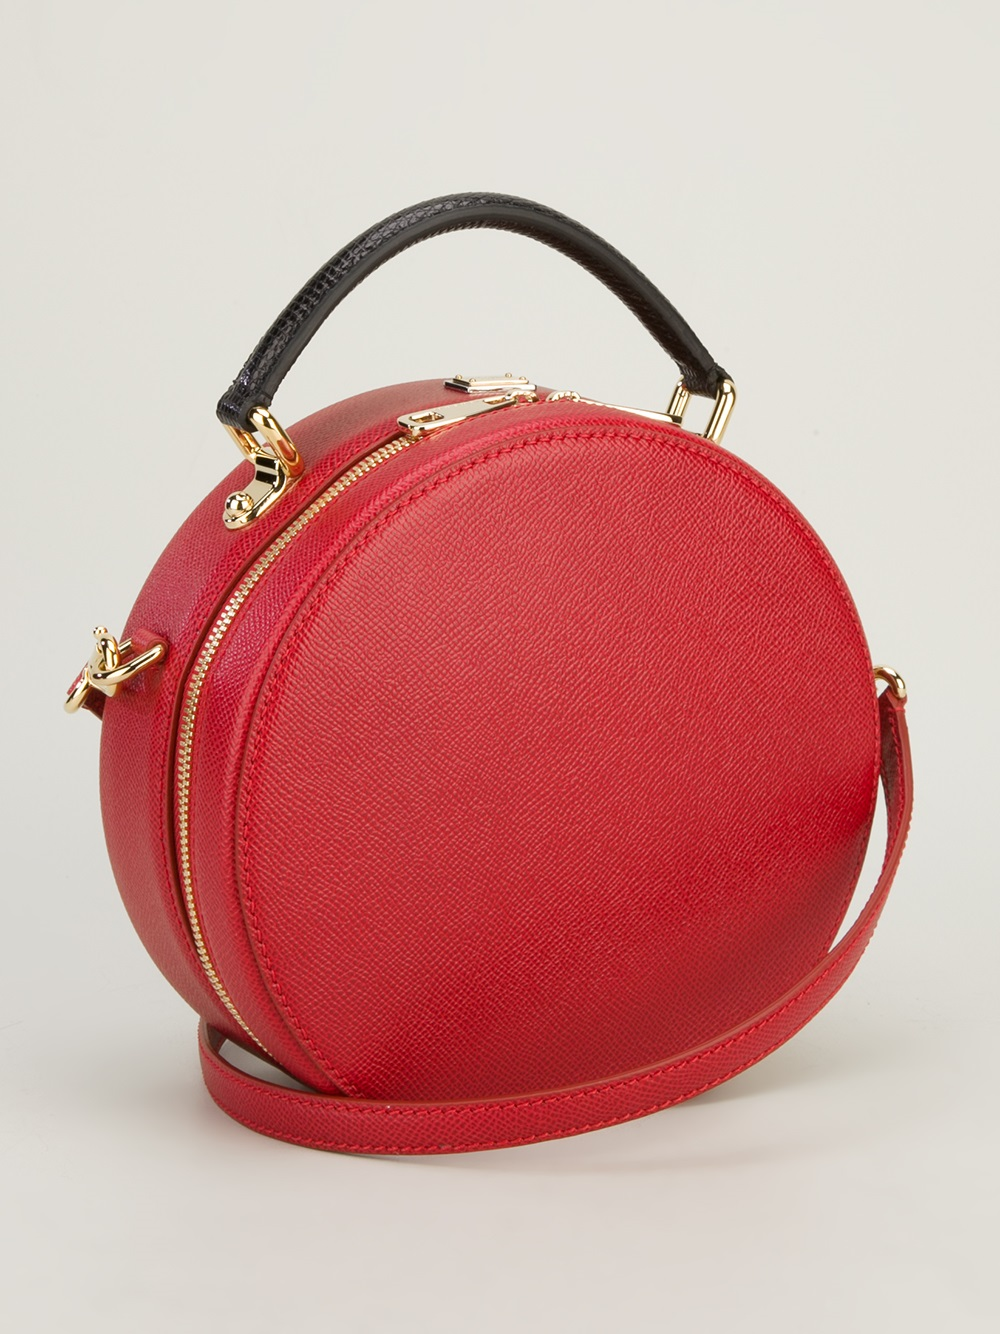 Dolce & gabbana Small Round Shoulder Bag in Red | Lyst